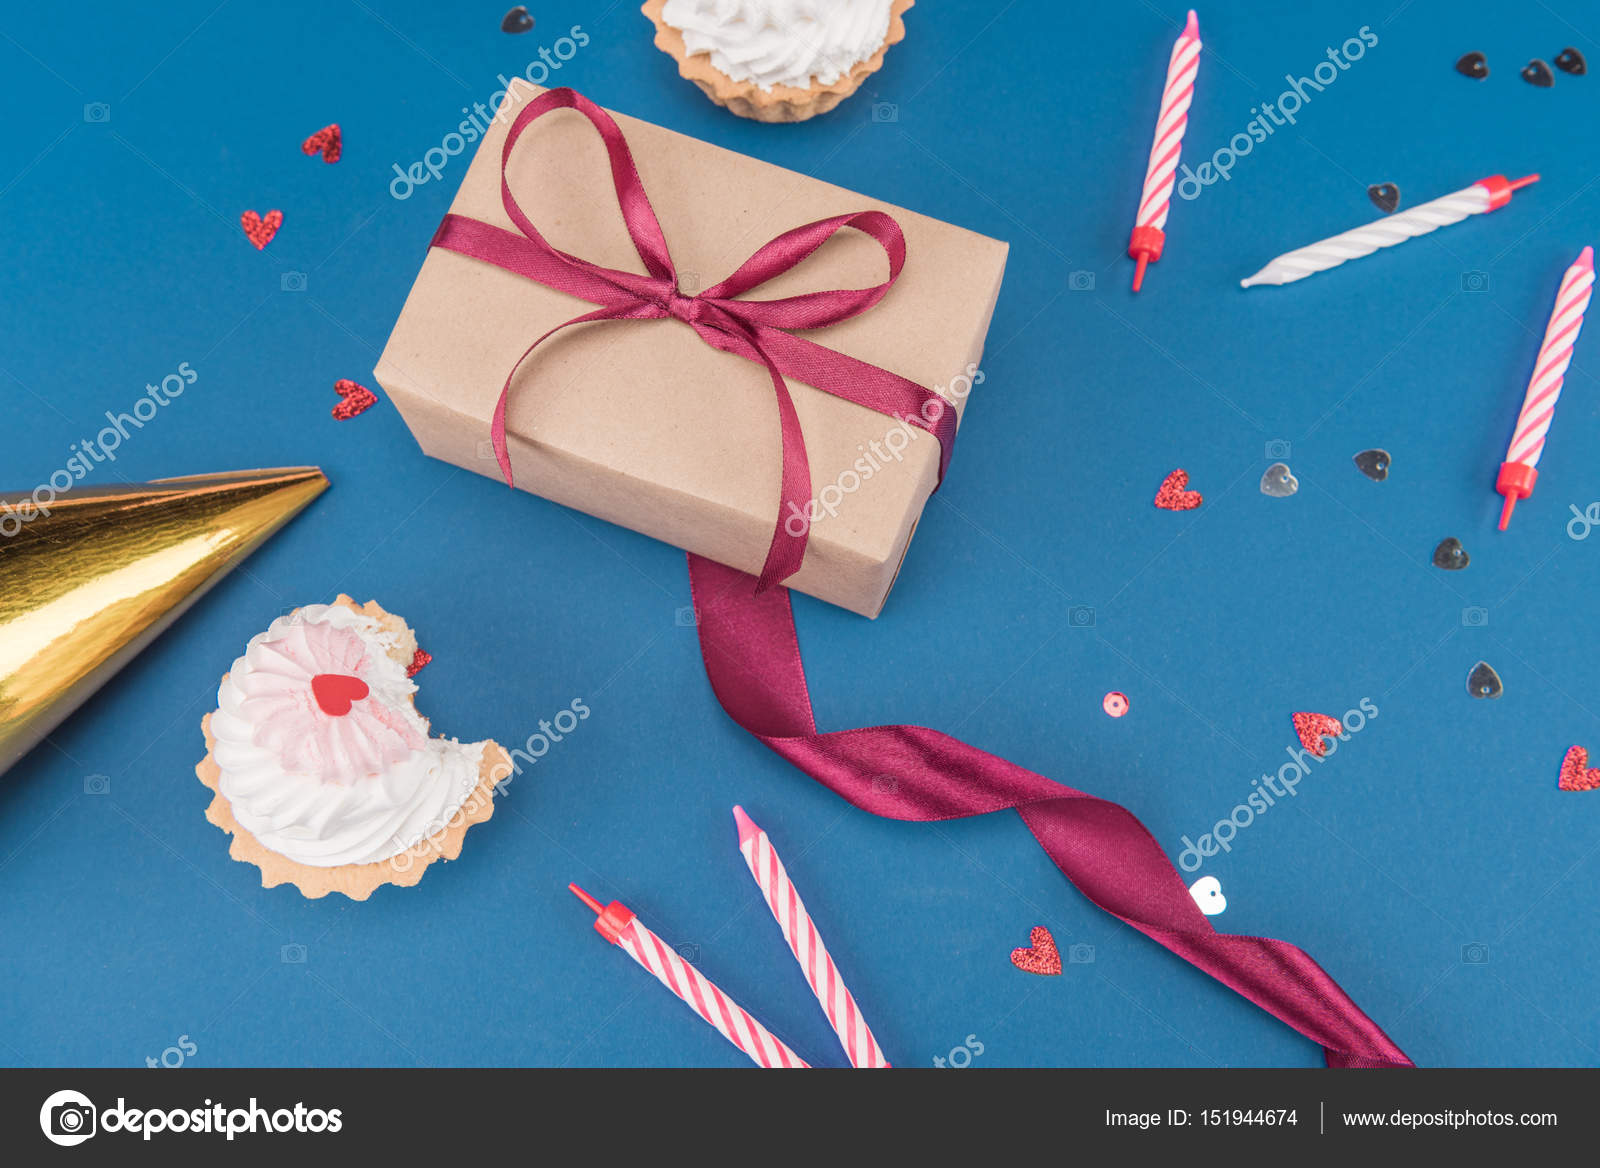 Gift box and cakes stock photo vikakhalabuzar 151944674 side view of gift box cakes and candles isolated on blue birthday party concept photo by vikakhalabuzar negle Images